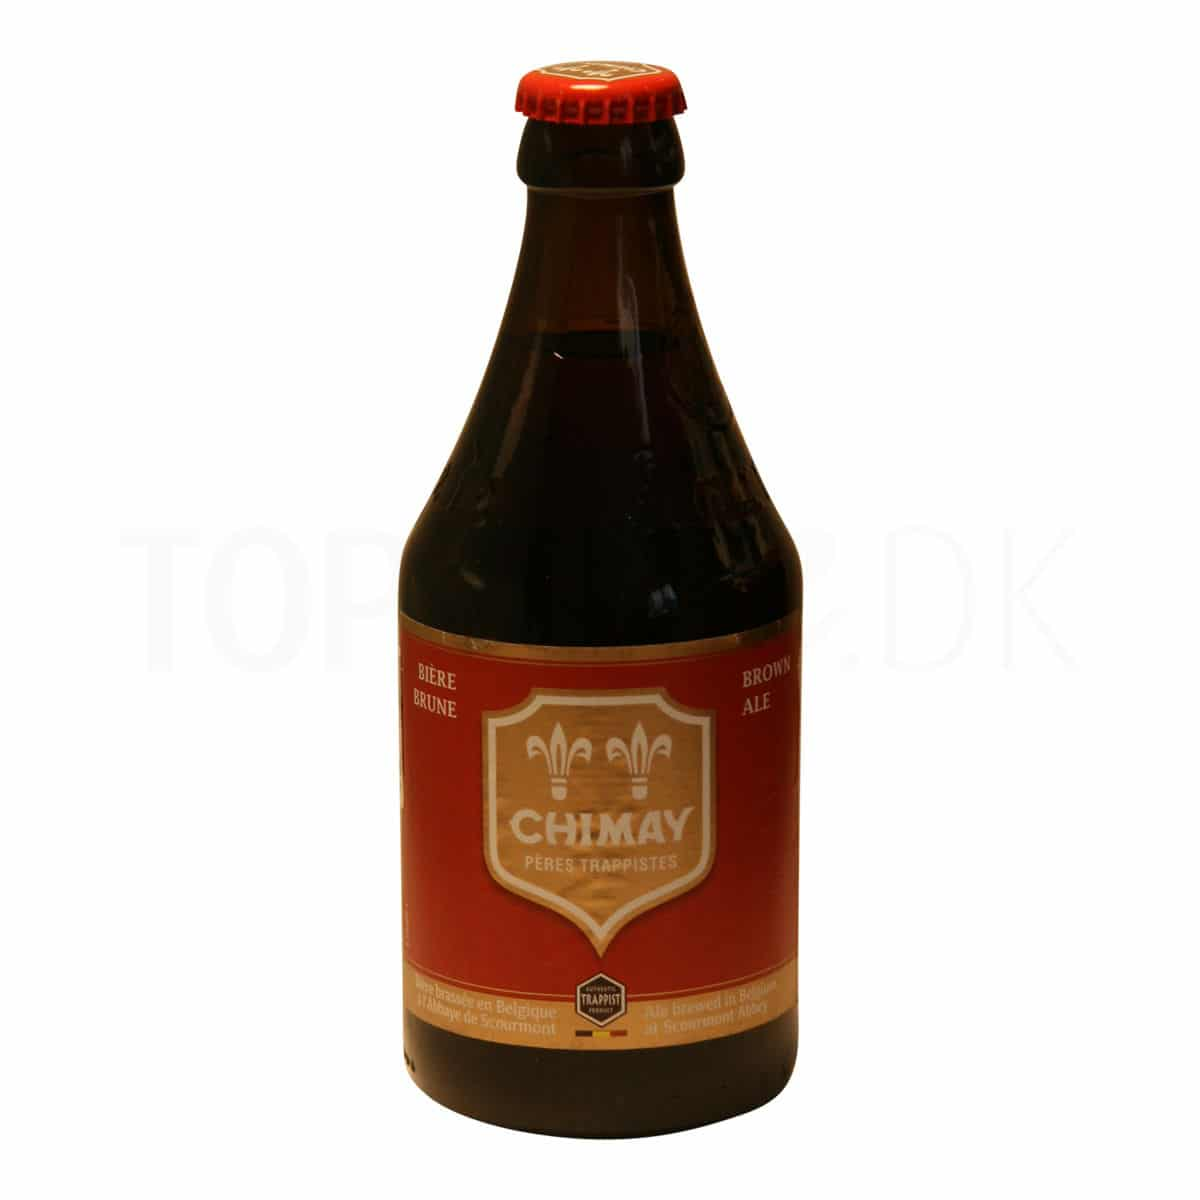 Topvine Chimay red